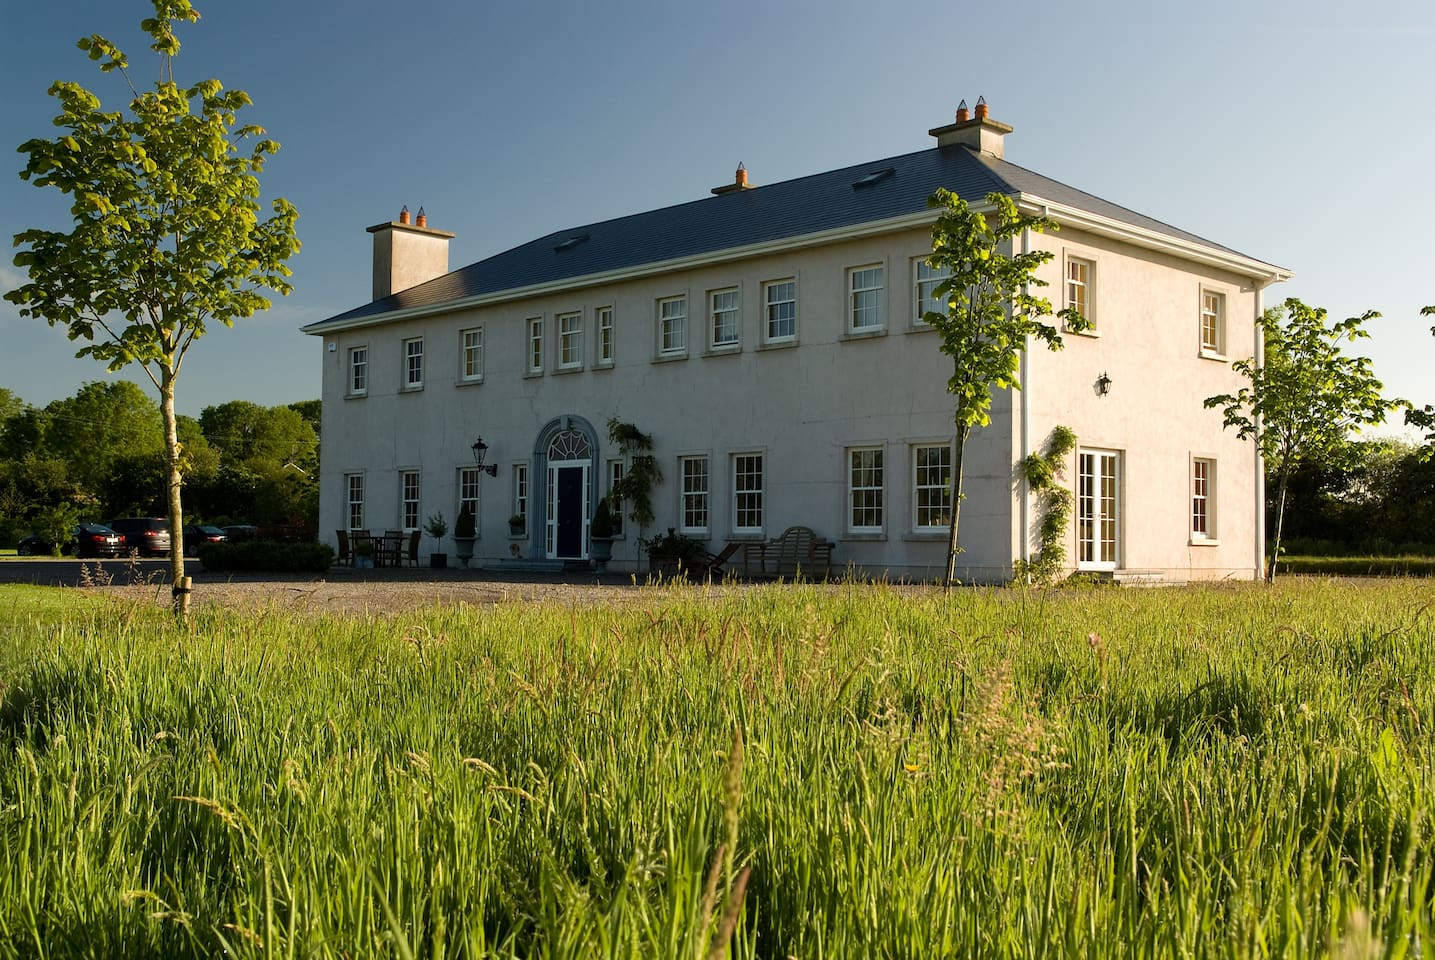 Rathellen House, Tipperary set on a large lawned garden in rural tranquility at the edge of the Glen of Aherlow